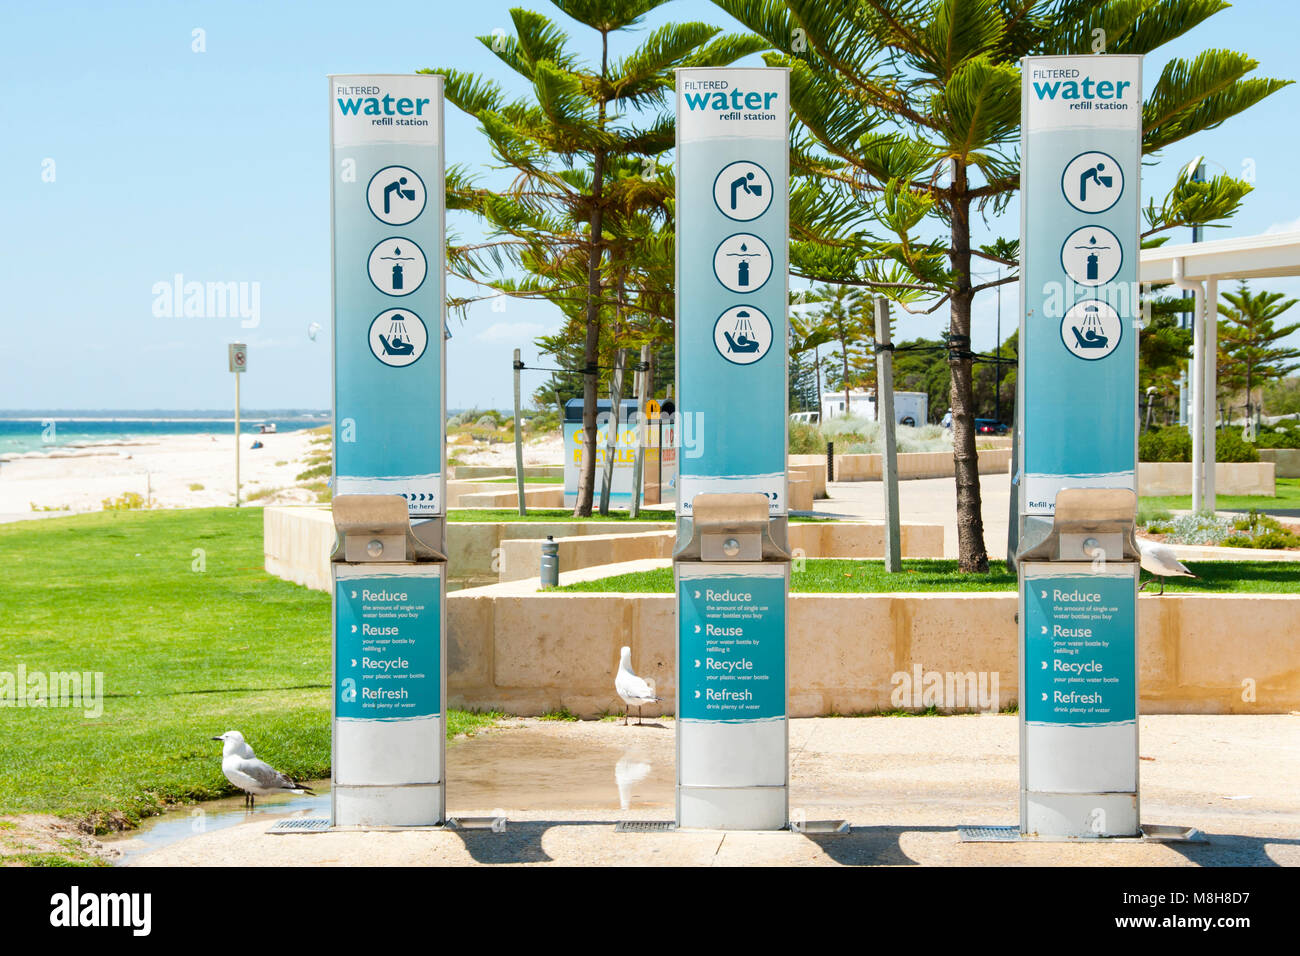 Water Refill Station - Stock Image